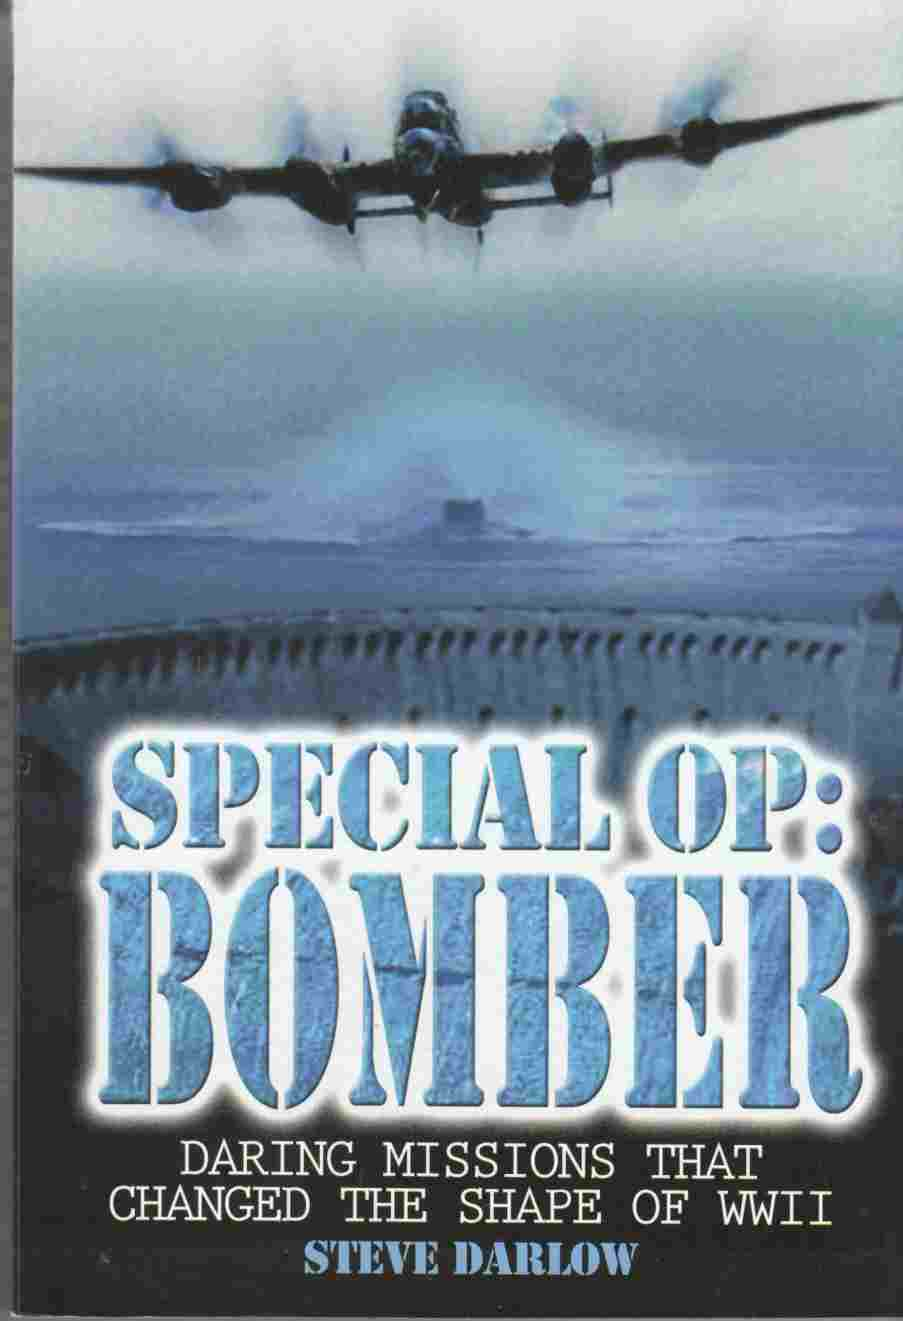 Image for Special Op: Bomber Daring Missions That Changed the Shape of WWII